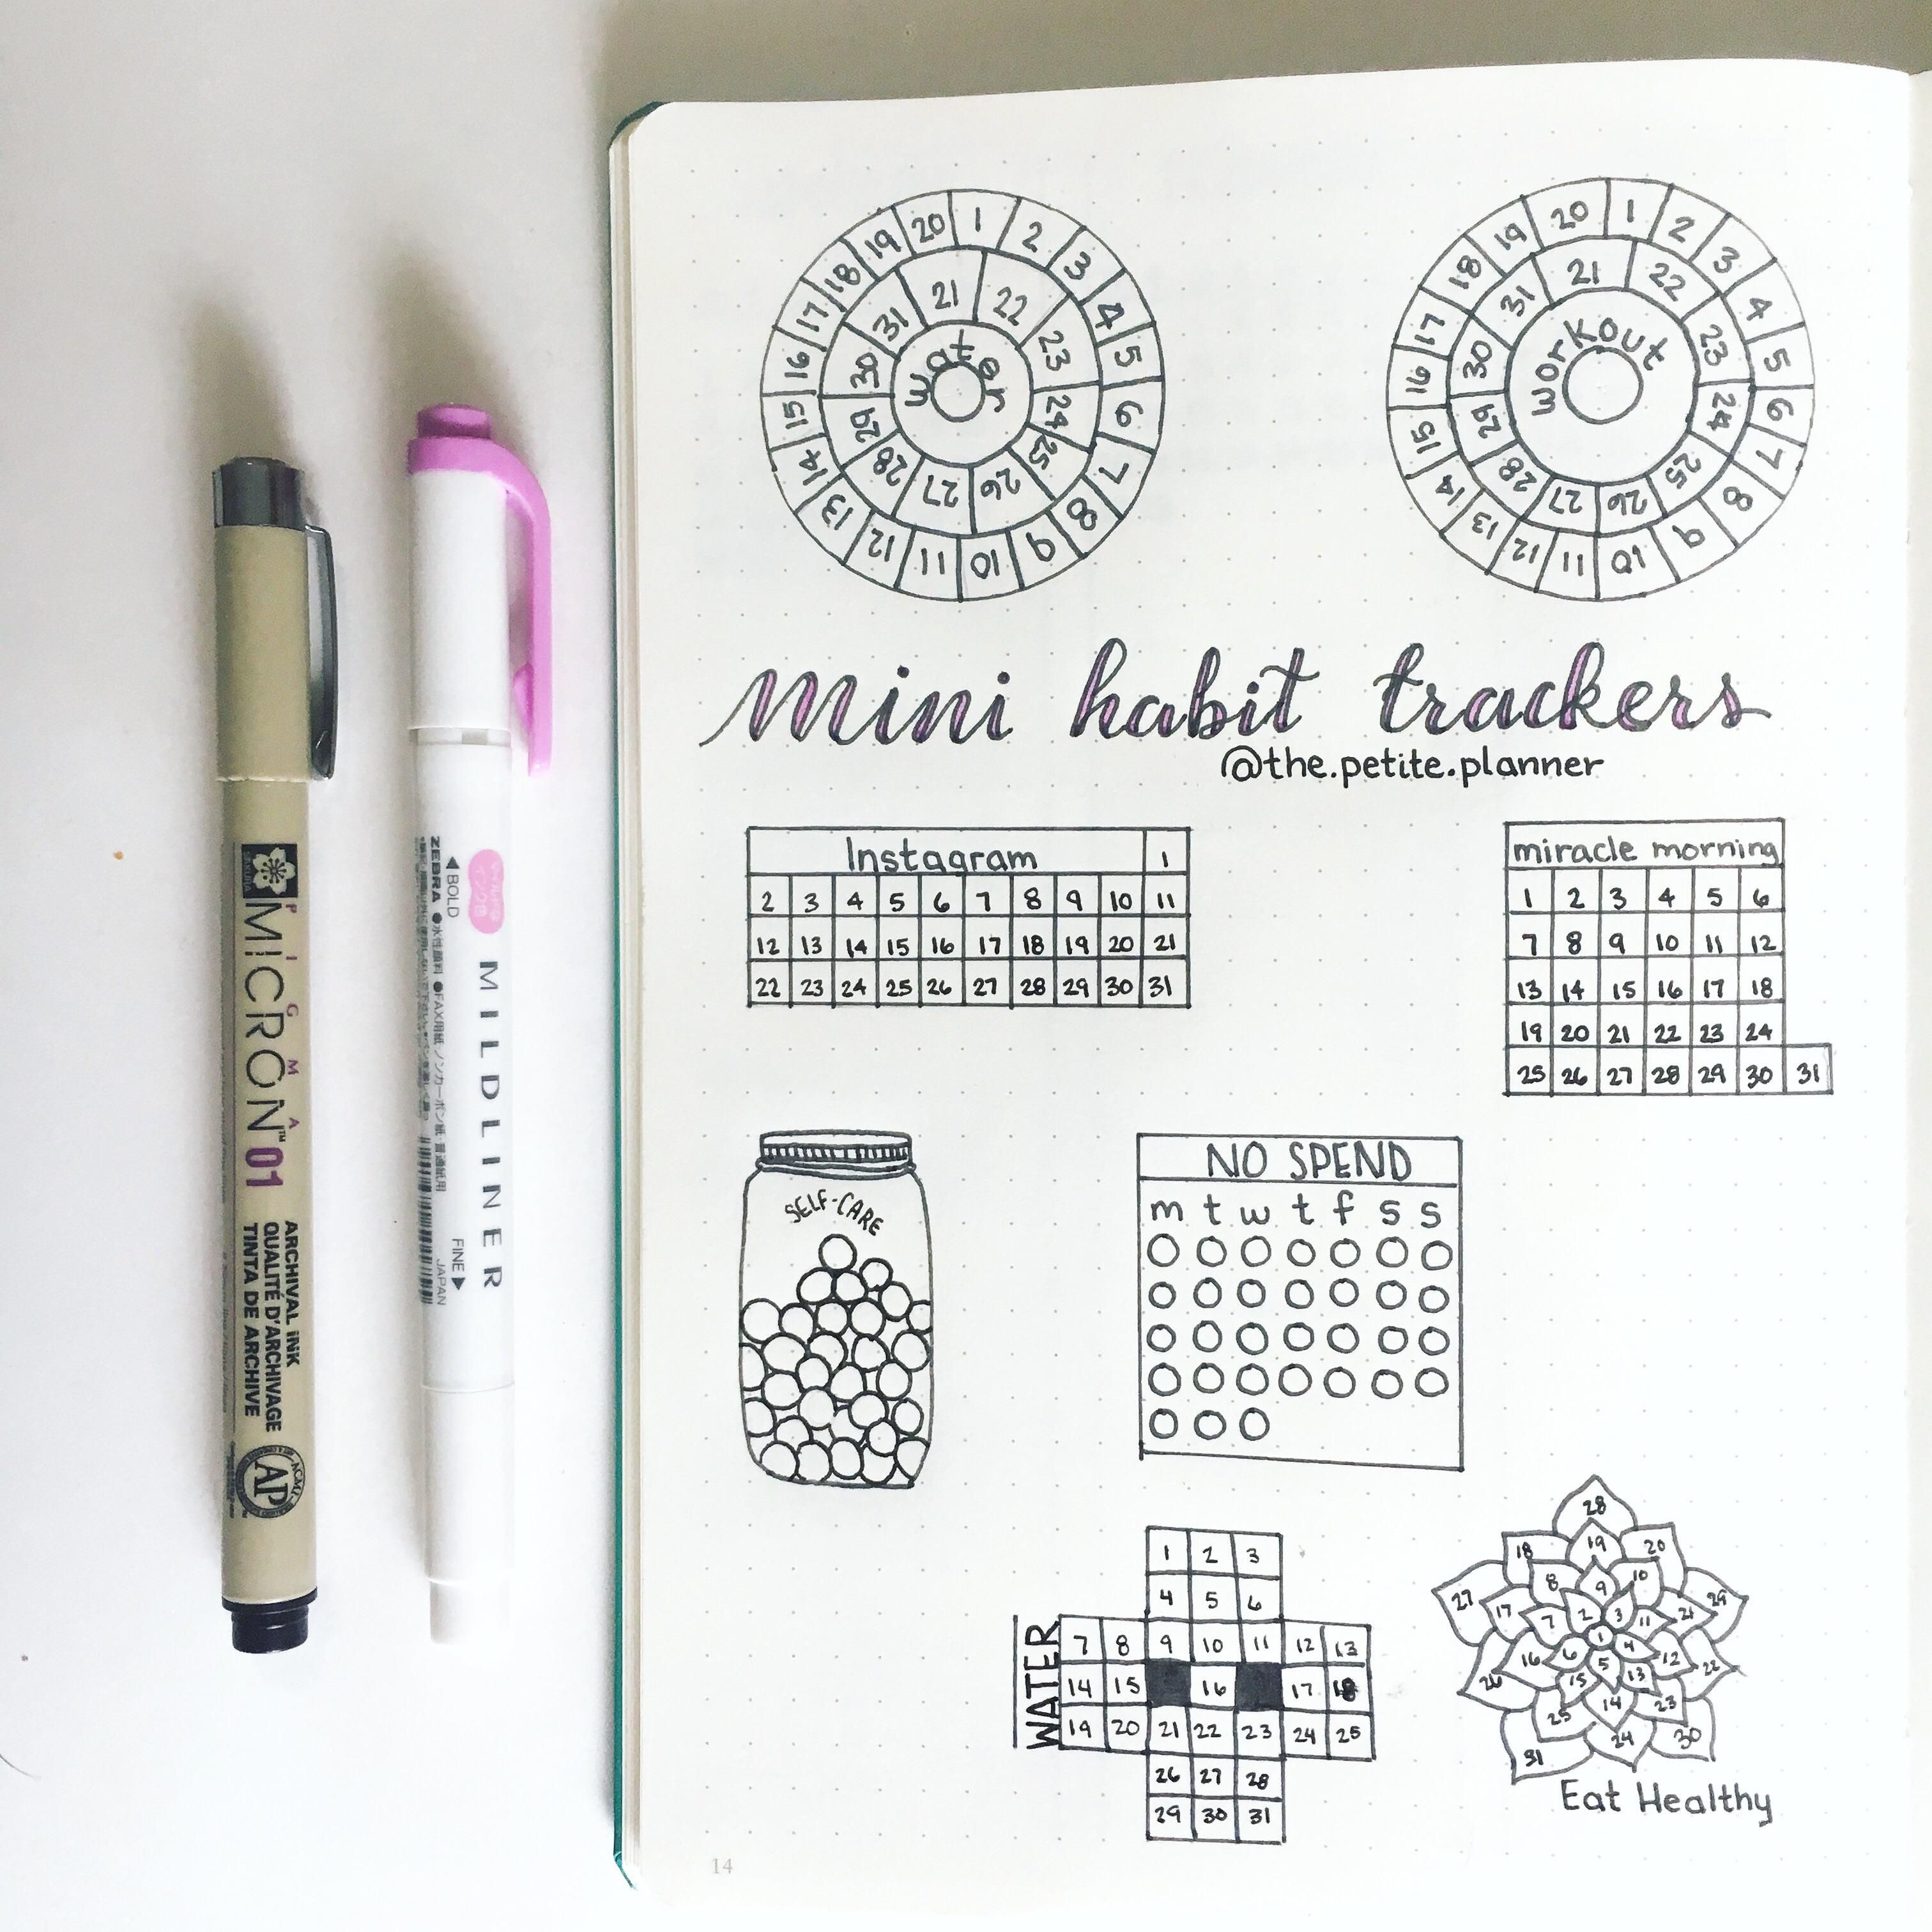 45 points and 2 comments so far on reddit habit tracker